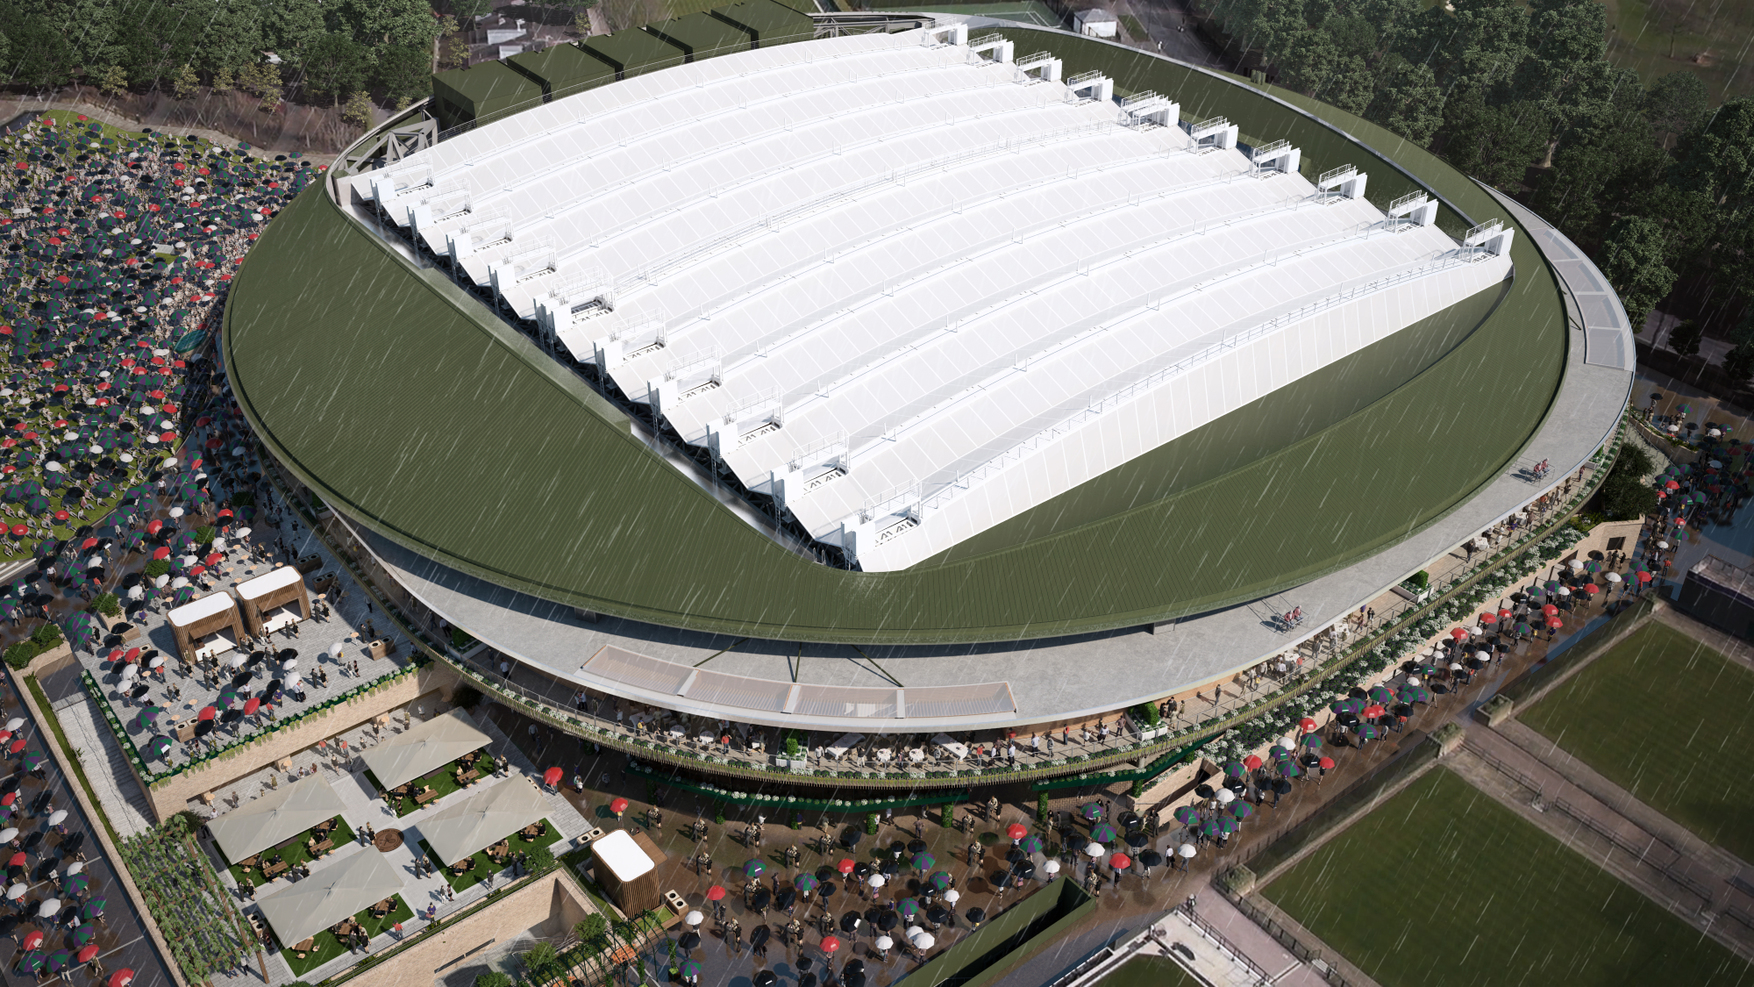 Roof over Wimbledon No.1 Court will be ready by 2019